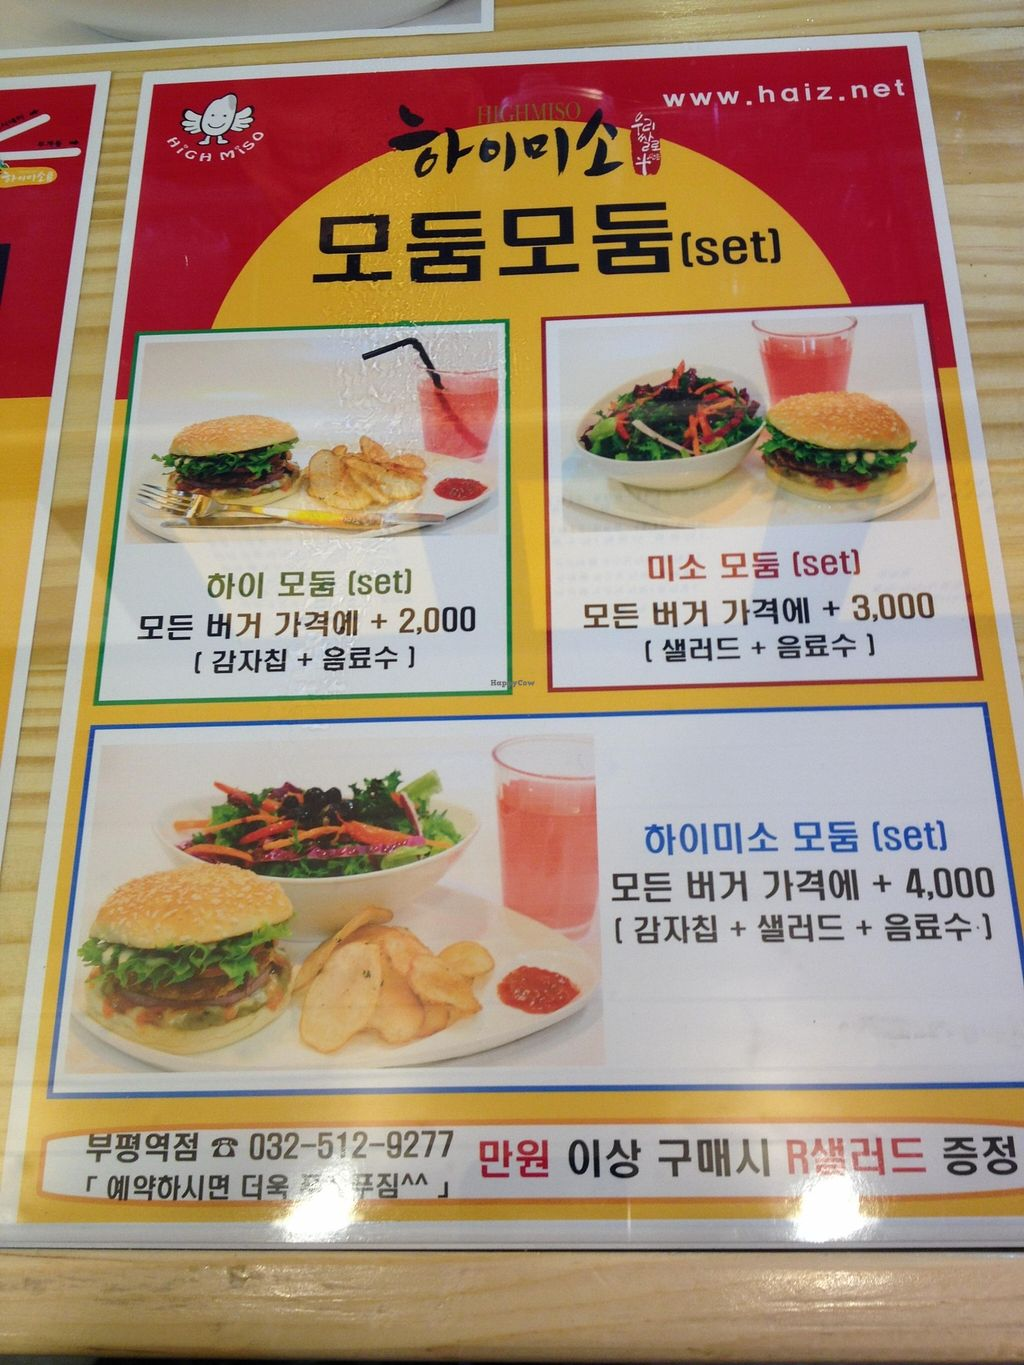 """Photo of CLOSED: High Miso  by <a href=""""/members/profile/Emomeow"""">Emomeow</a> <br/>Add potato chips and a drink for 2,000 won ('High set'). Add salad and a drink for 3,000 won ('Miso set'). Add potato chips, salad, and a drink for 4,000 won ('High Miso Set)' <br/> February 13, 2016  - <a href='/contact/abuse/image/69334/136178'>Report</a>"""